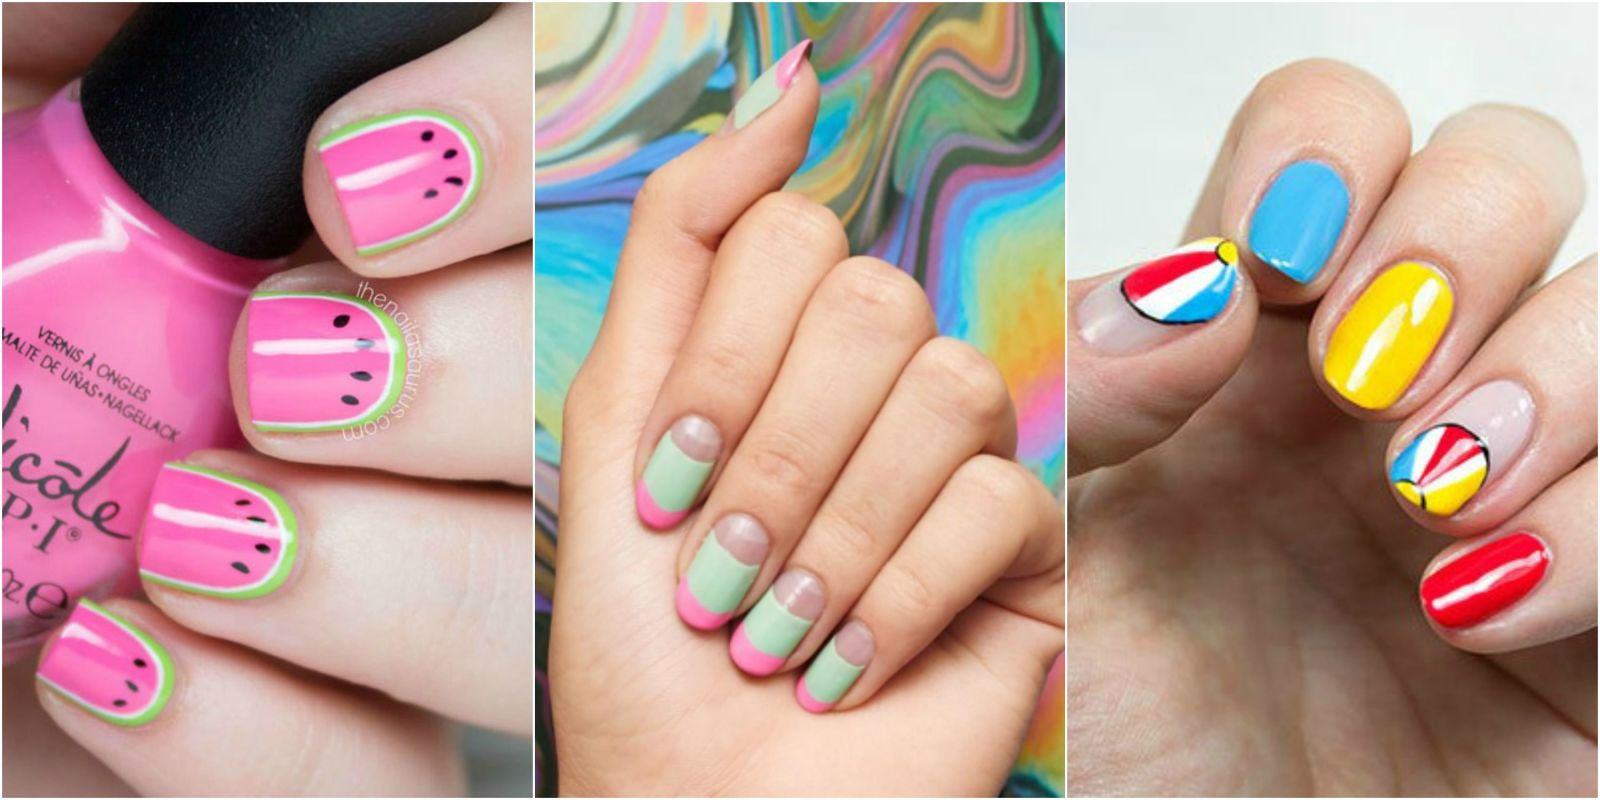 24 summer nail designs for 2017 best nail art ideas for summer - Nail Designs Ideas